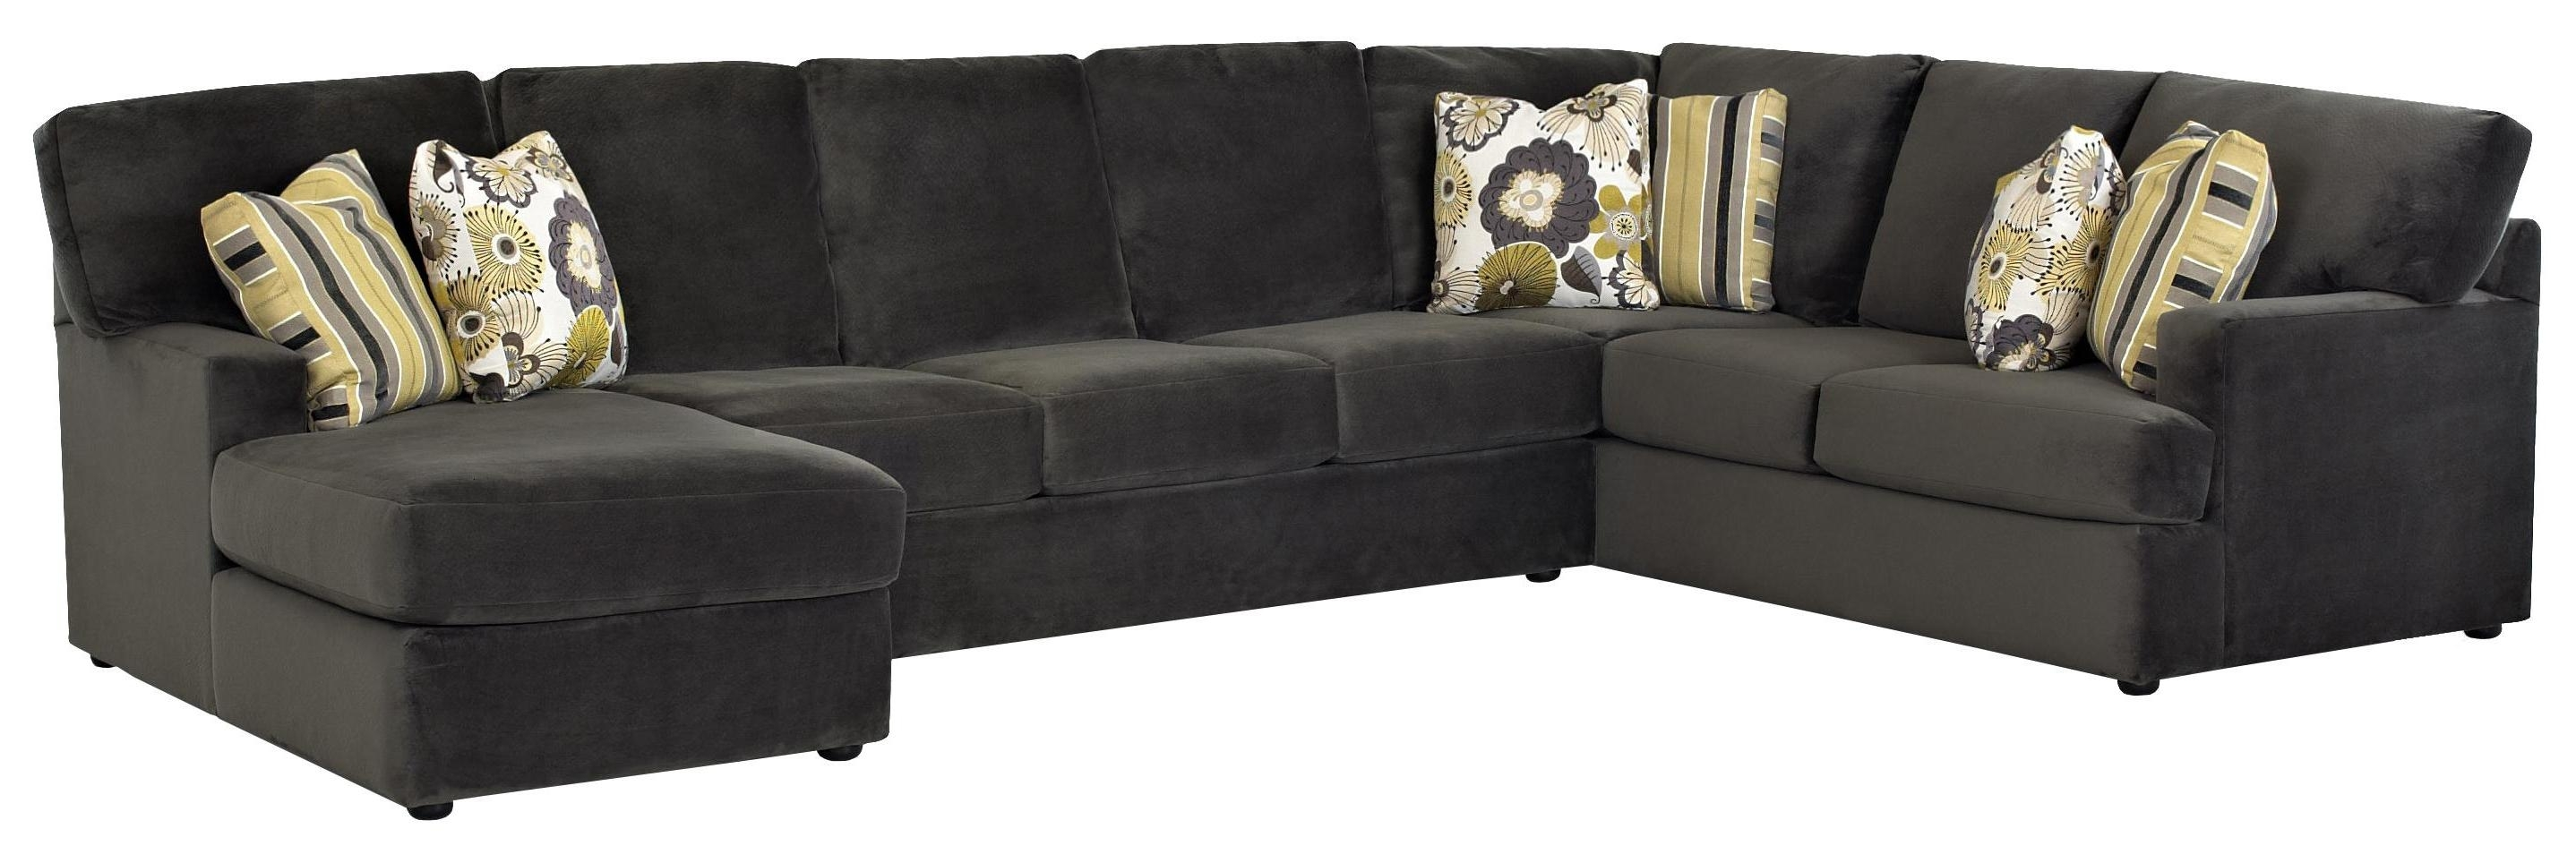 Sectional Sofa With Left Side Chaiseklaussner | Wolf And With Gardiners Sectional Sofas (Image 8 of 10)